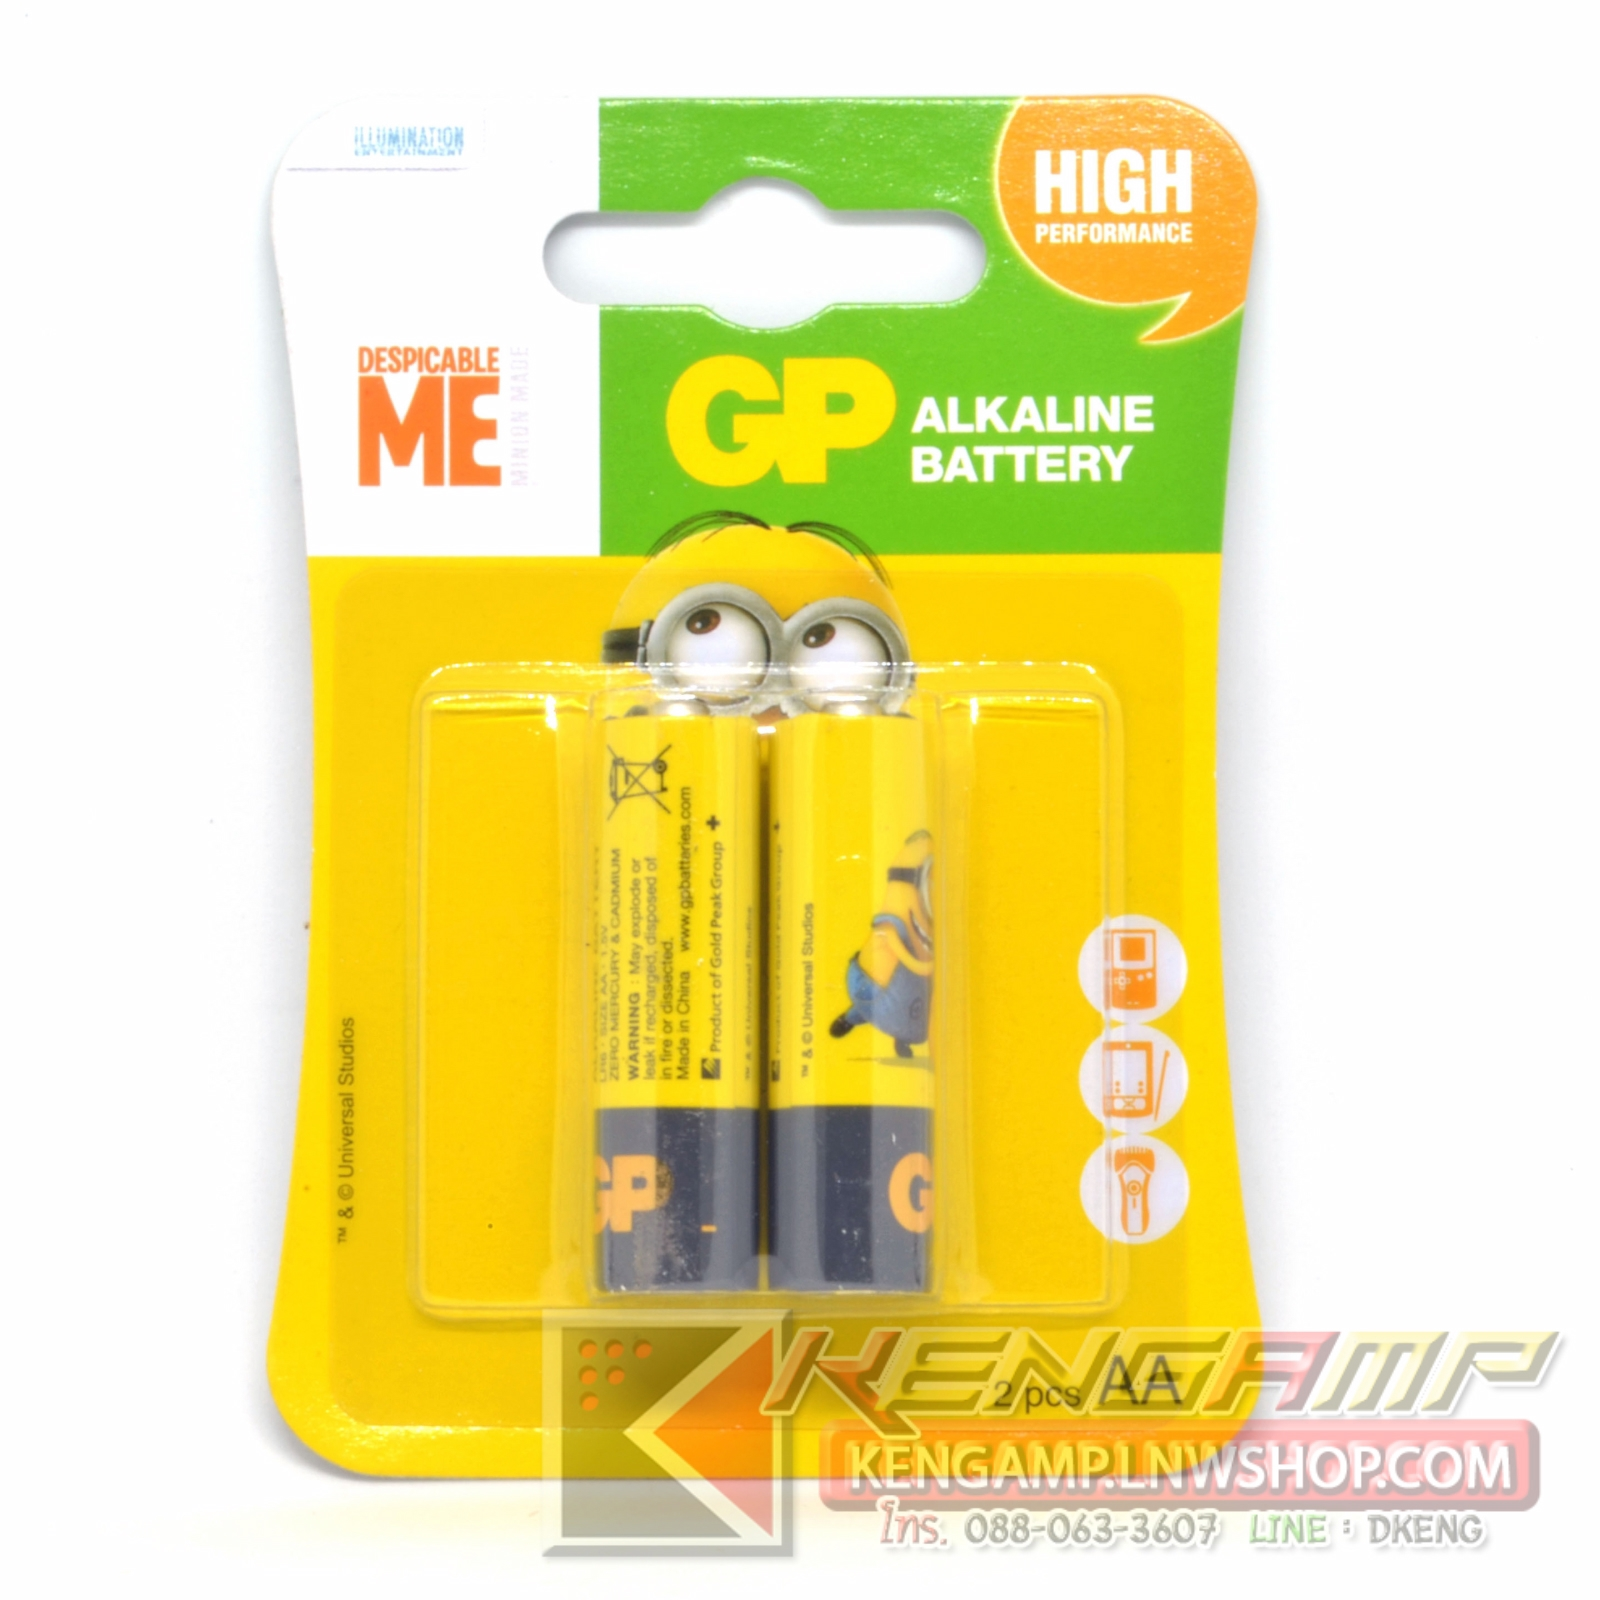 ถ่าน AA GP ALKALINE DESPICABLE ME